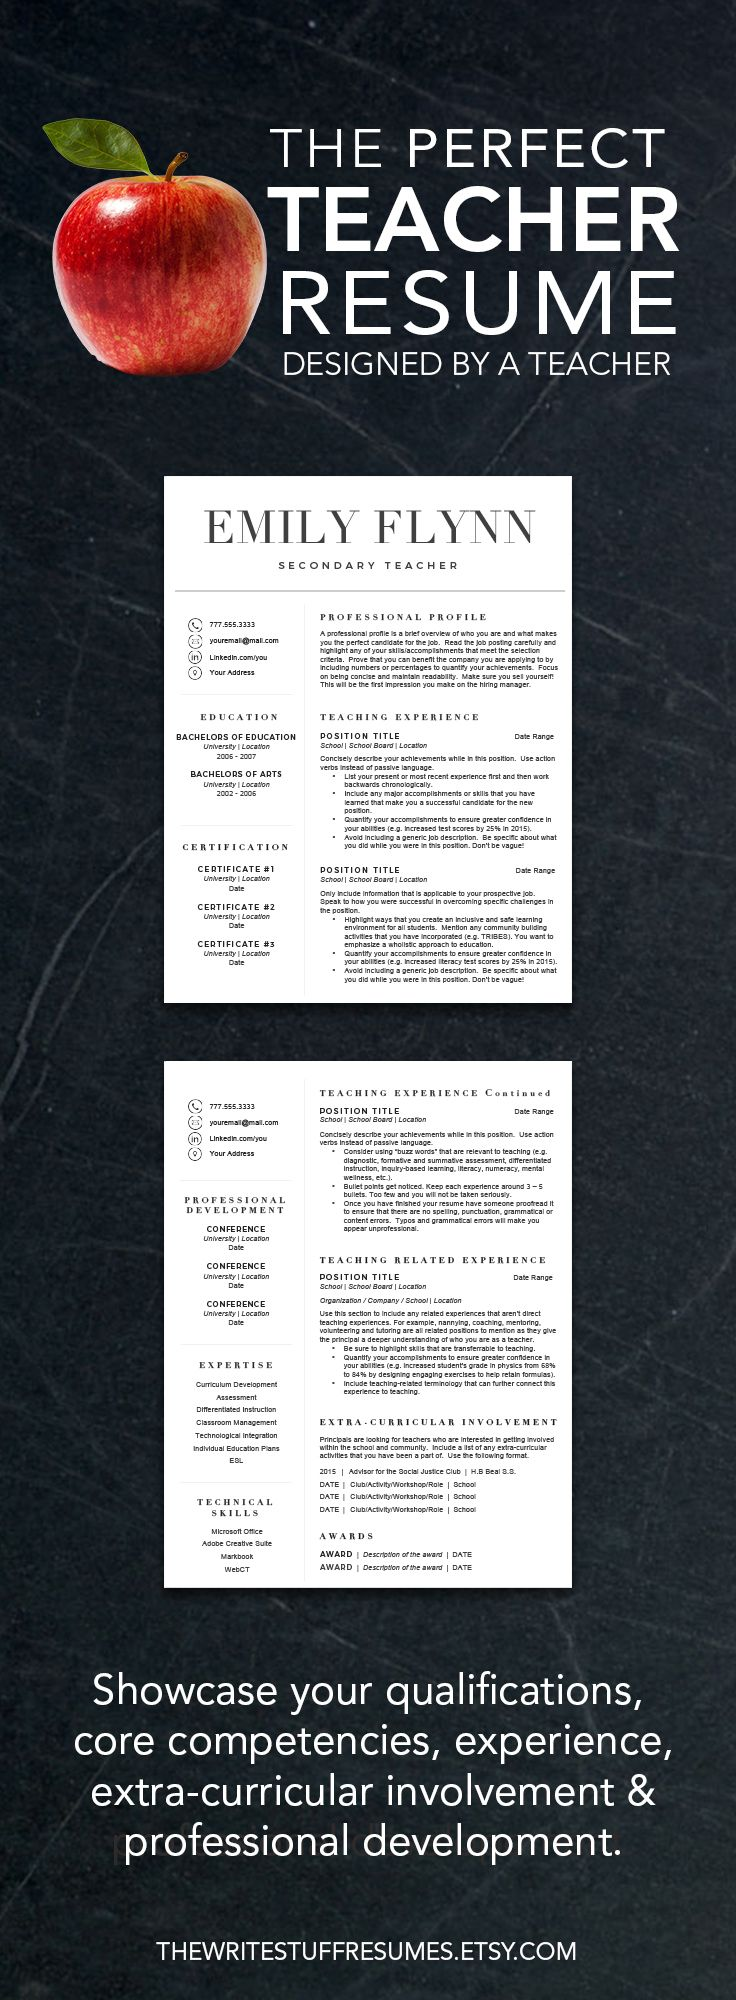 Teacher resume template for Word and Pages (1, 2 and 3